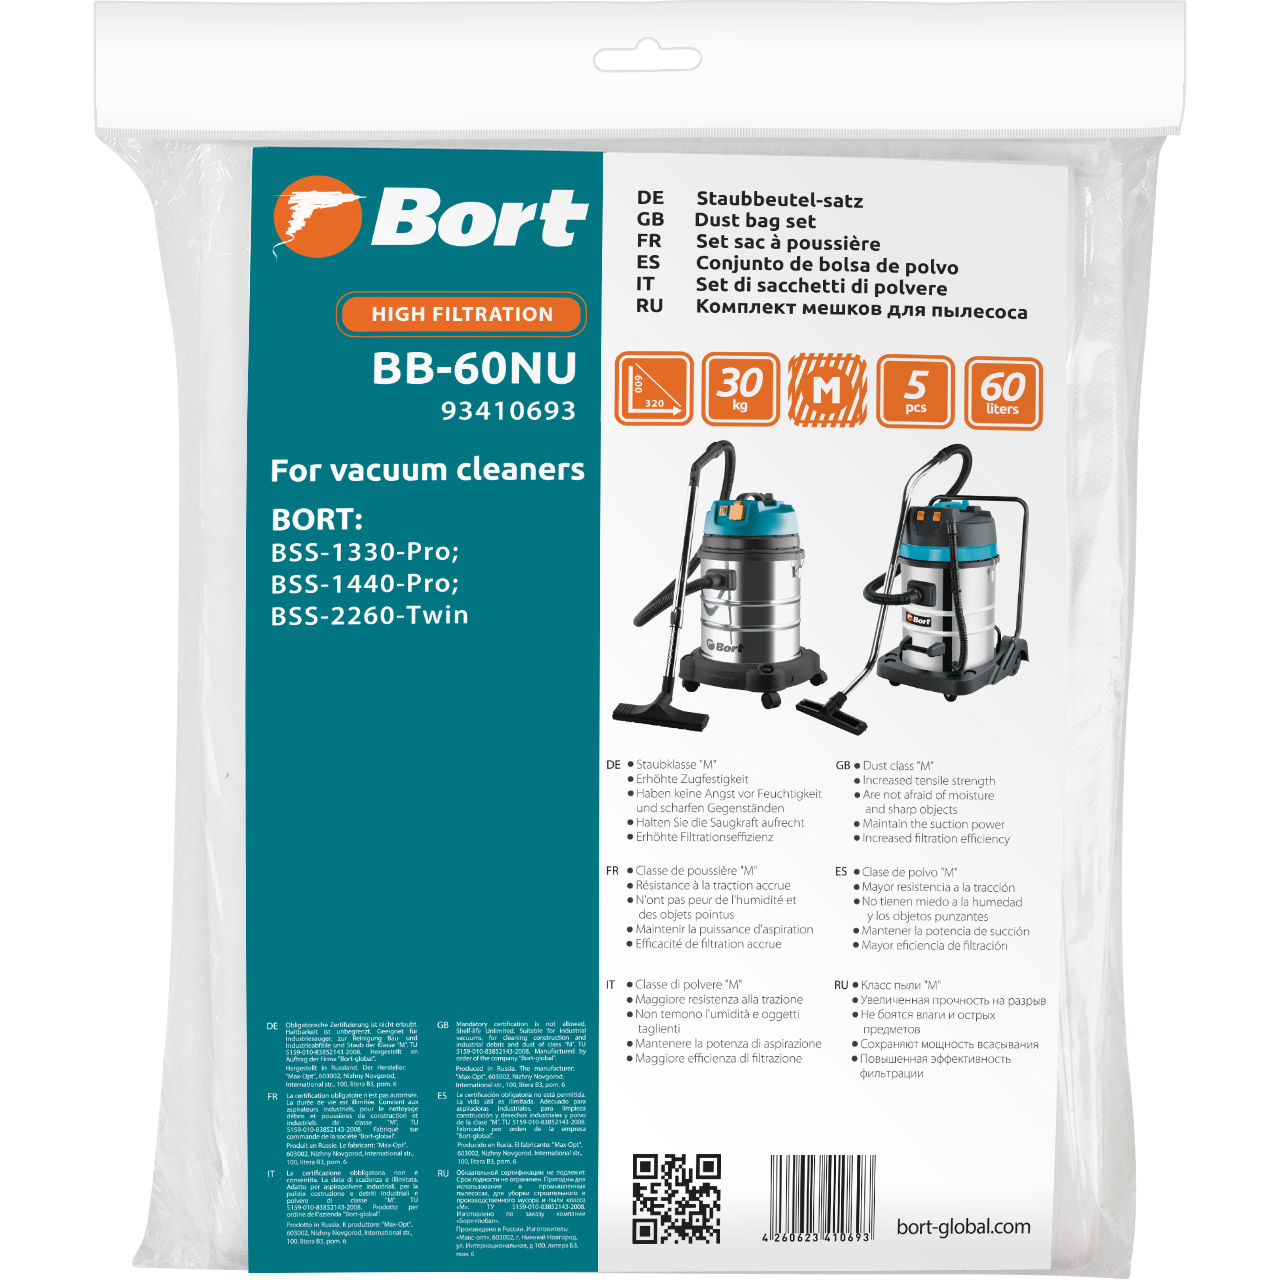 Bags set dust Collection bort BB-60NU (5 pcs volume 60l, BSS-1330-Pro; BSS-1440-Pro; BSS-2260-Twin)